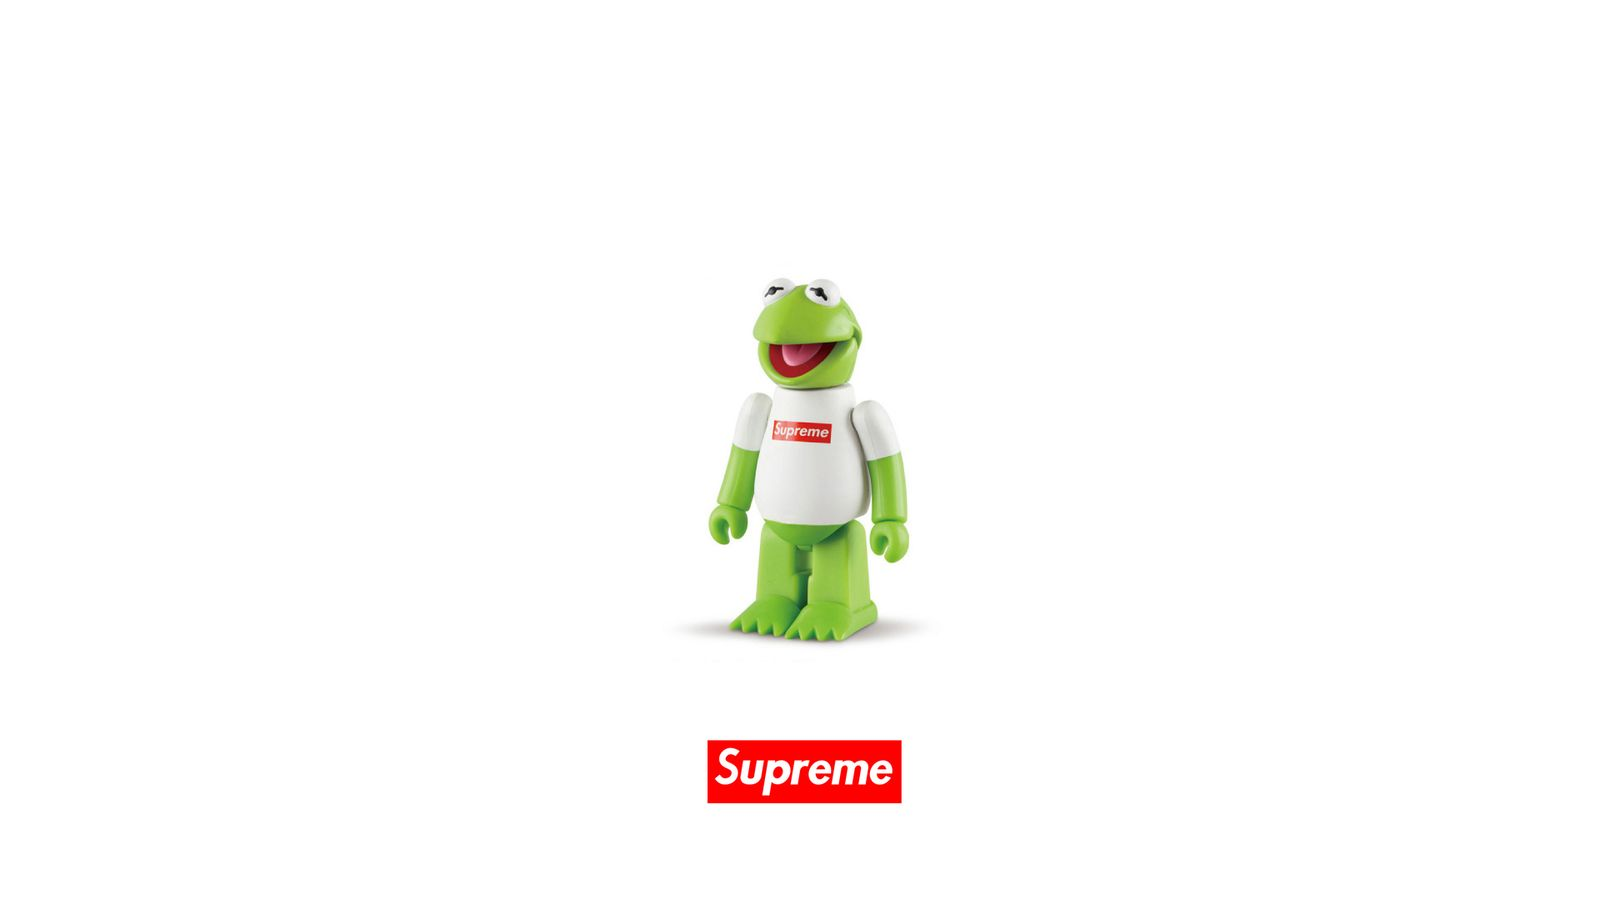 Supreme 1080p Wallpaper Picture Image 1600x900